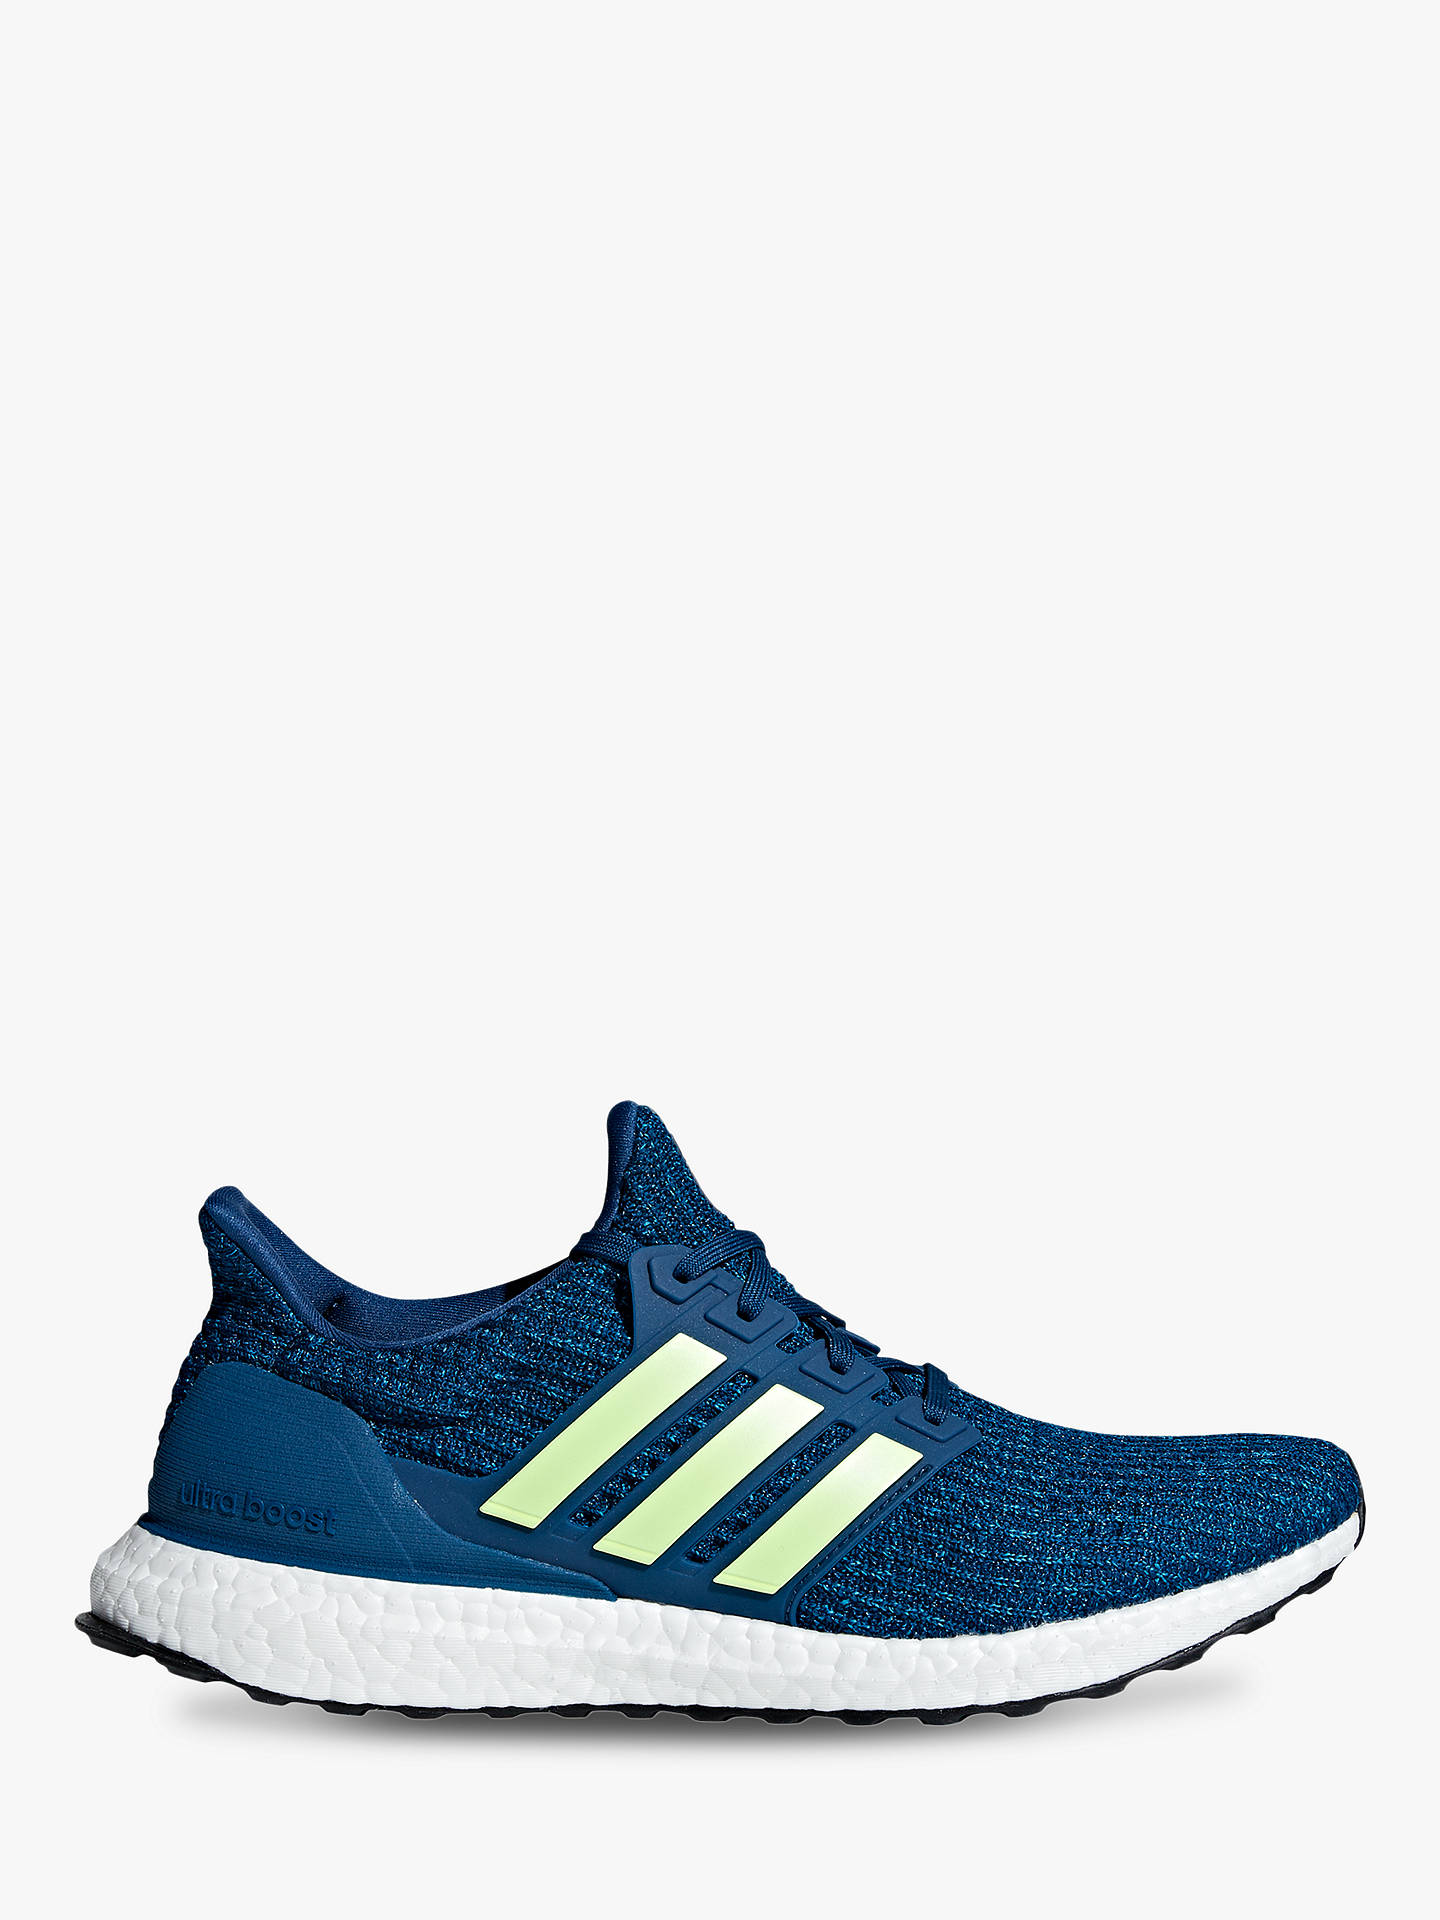 1e8d94e9056 adidas UltraBOOST Men s Running Shoes at John Lewis   Partners